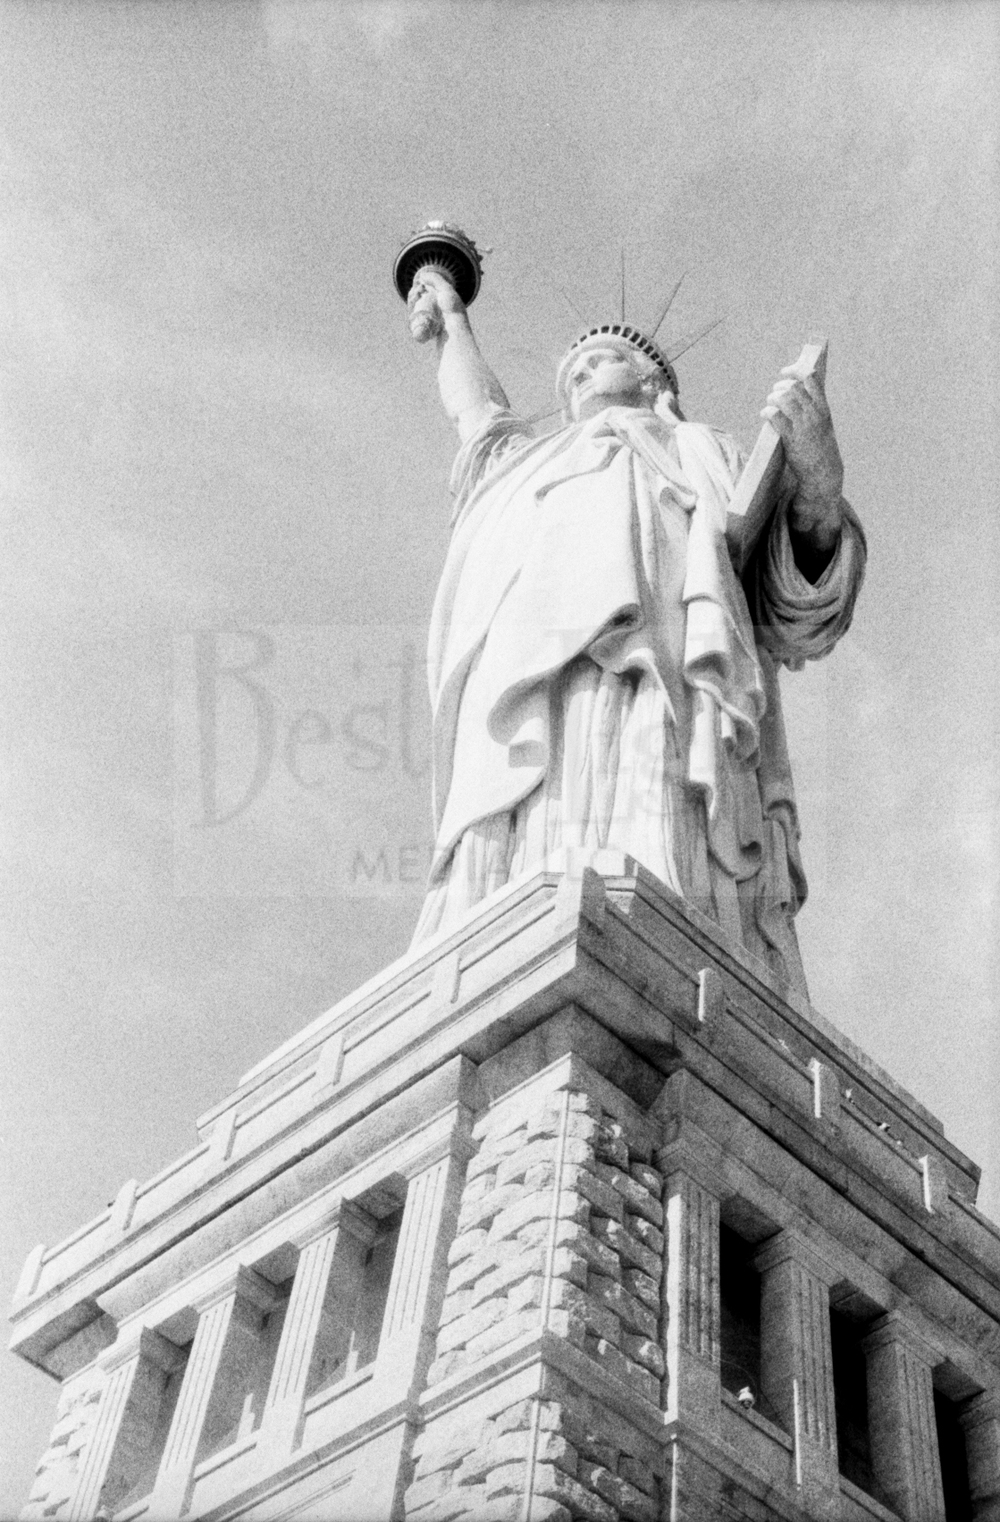 Fuji Neopan ISO 400 Pushed to 1600 -Statue of Liberty & Old Town Alexandria_20151001-21.jpg